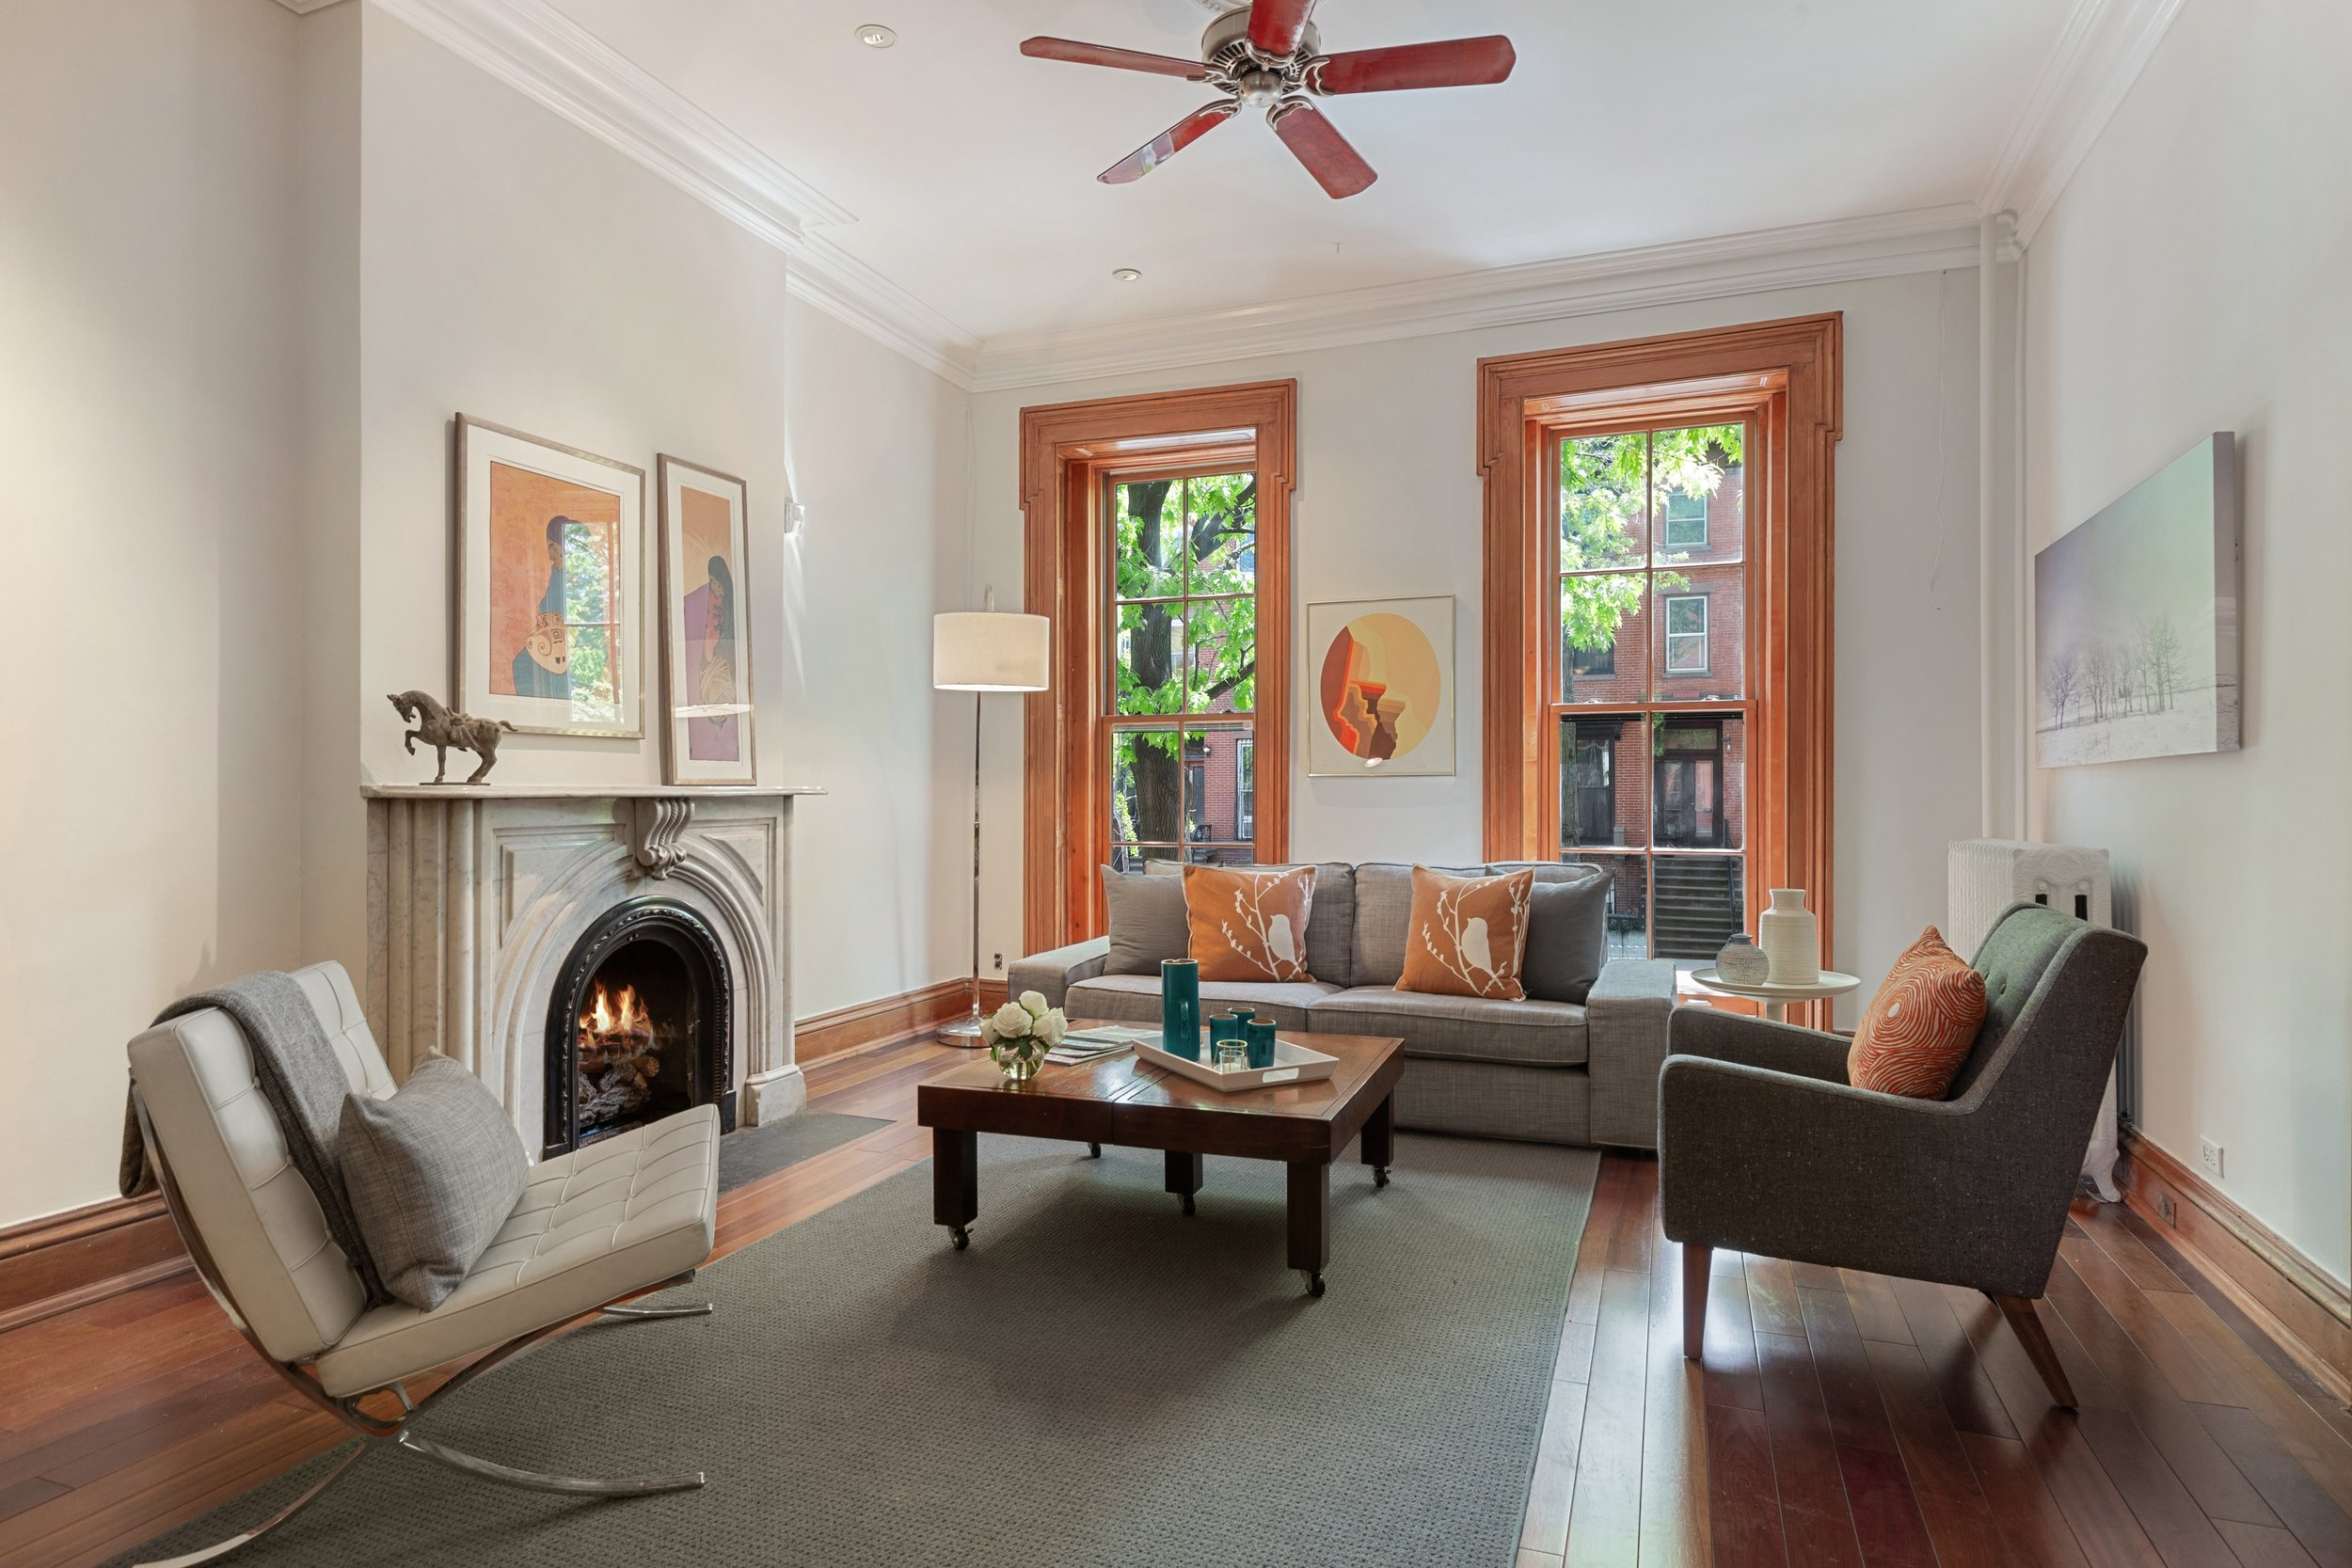 135 Gates Avenue - townhouse, Clinton hill, bk